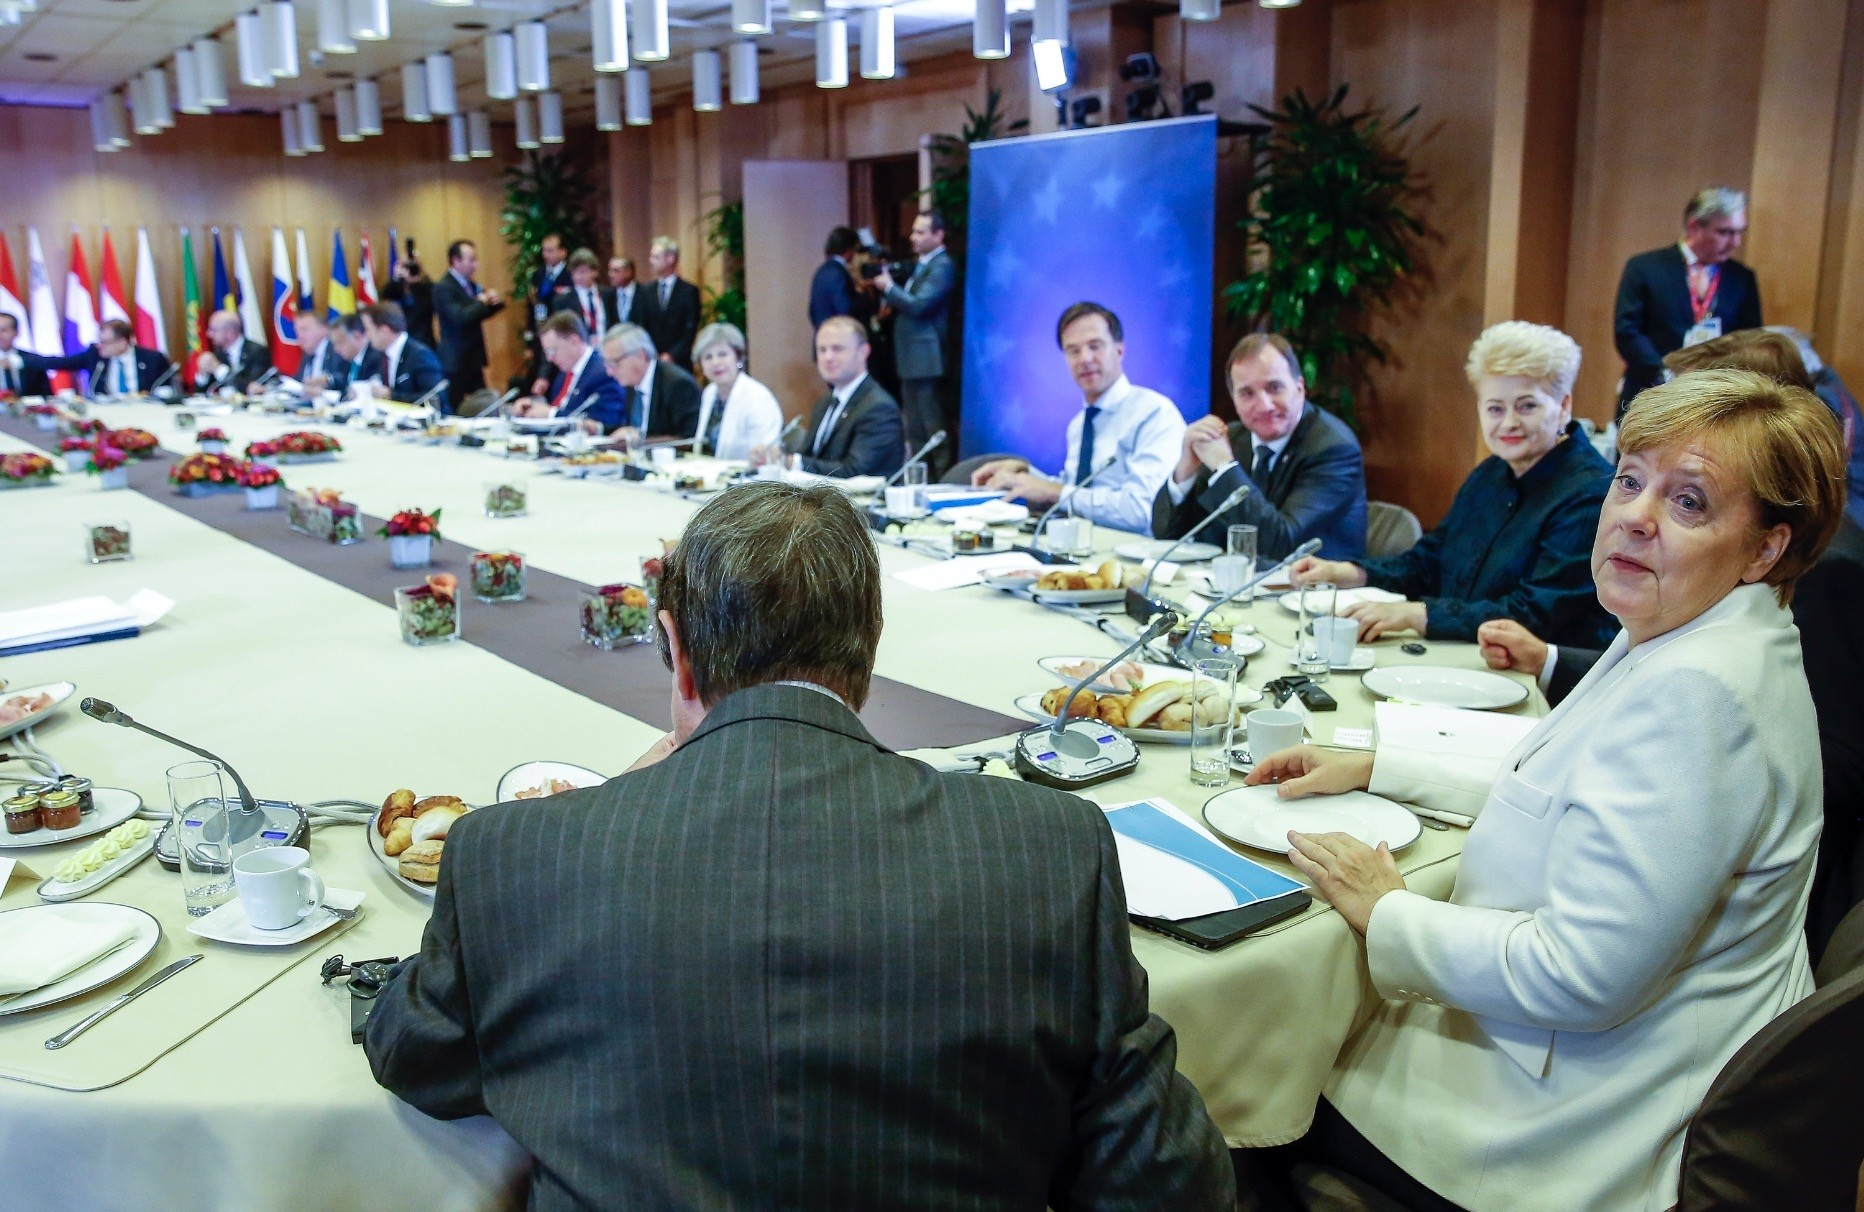 Angela Merkel and other EU leaders in a breakfast meeting at an EU summit in Brussels Oct. 20. The German Chancellor said there is no majority that makes a decision on an immediate end to the negotiations with Turkey.